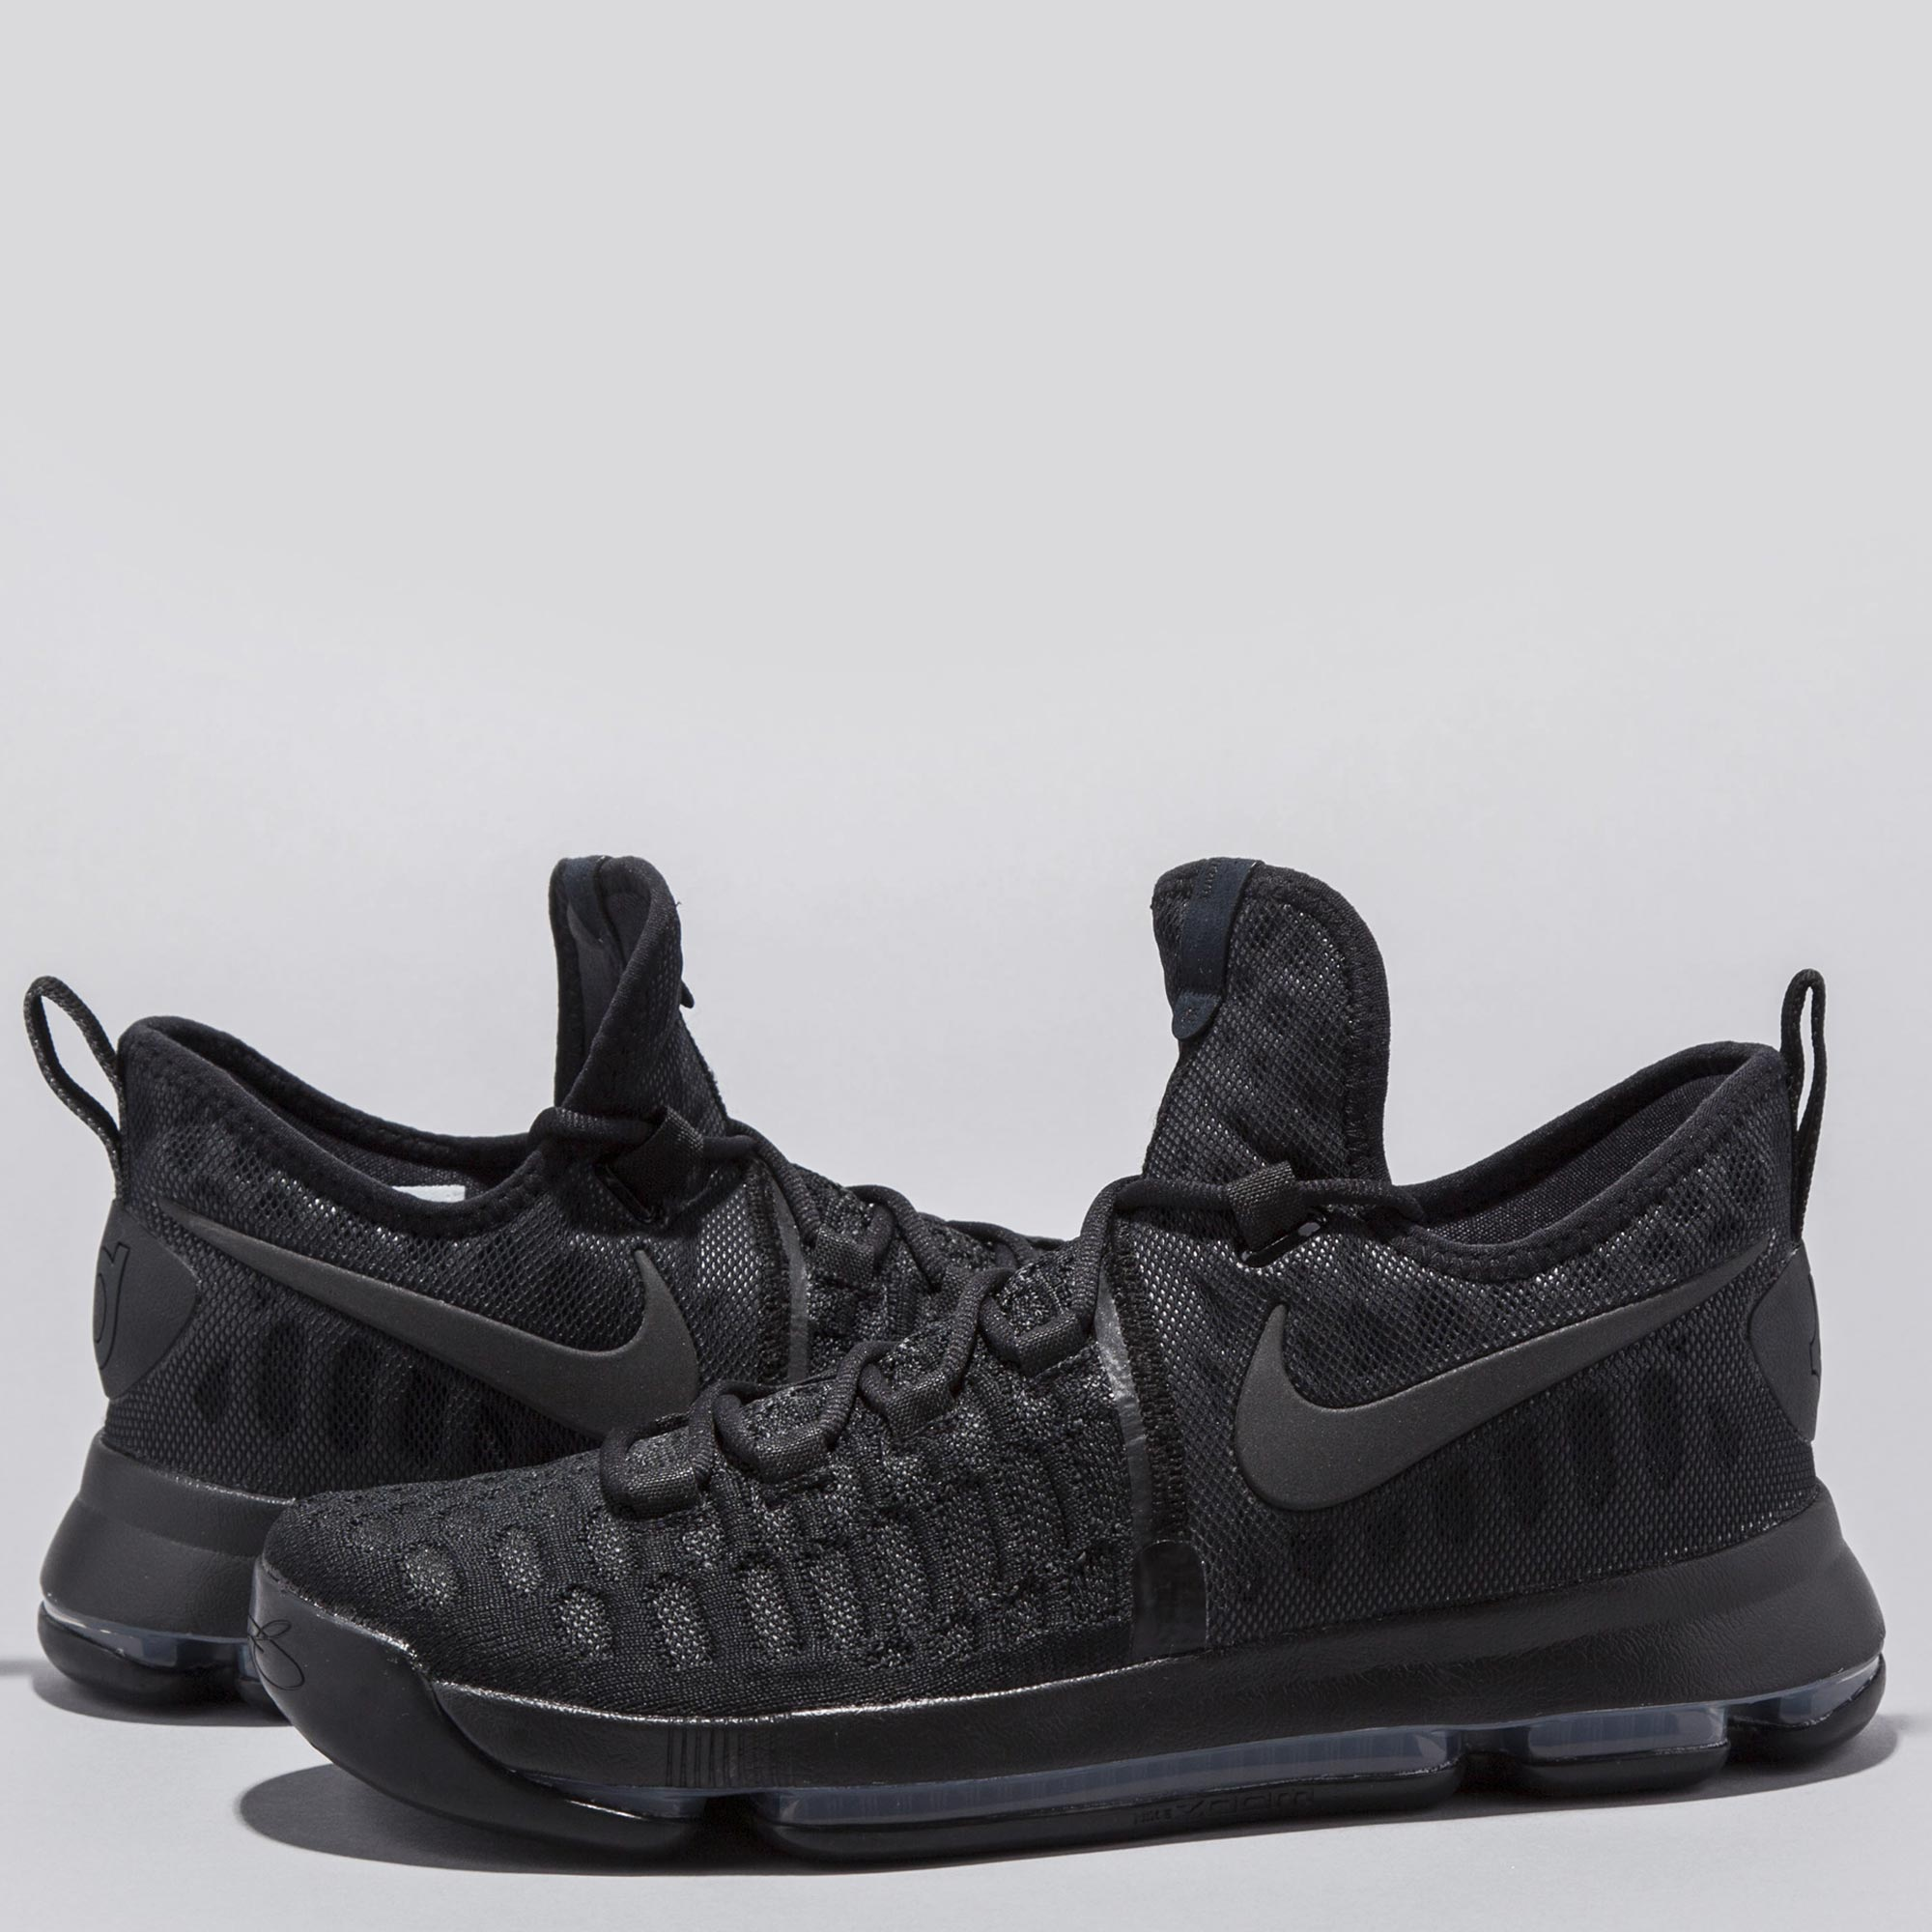 Nike Zoom KD 9 Basketball Shoe - Black/Black